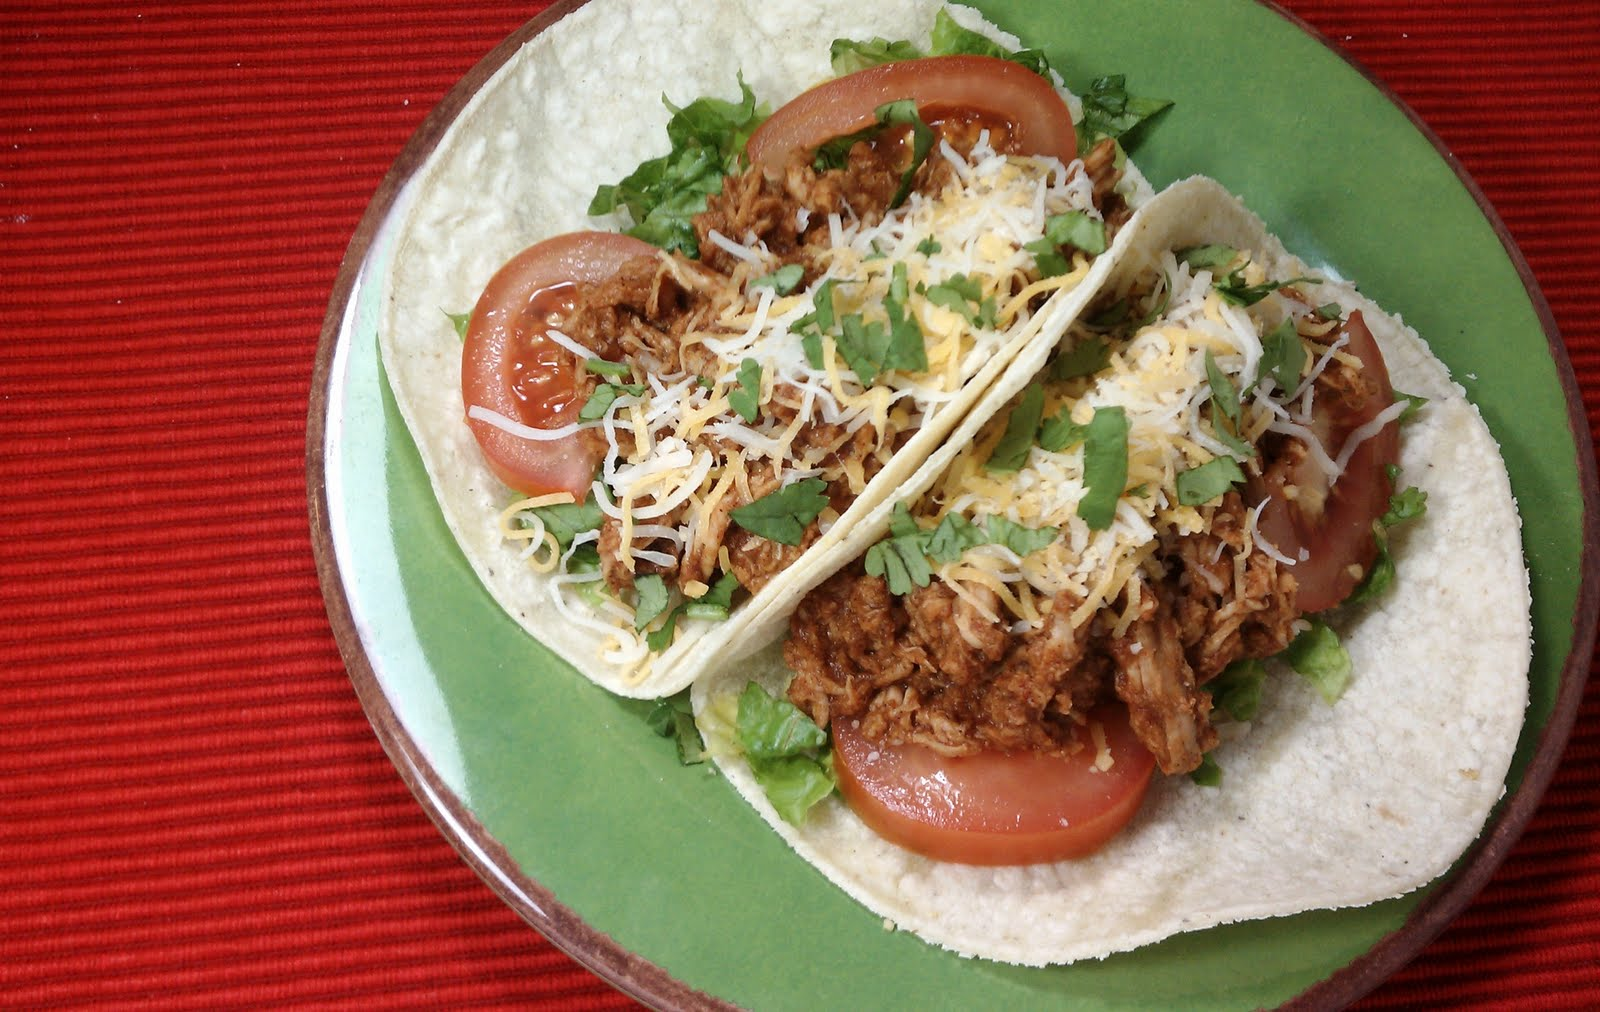 Slow Cooked Mexican Pulled Pork Tacos - Emily Bites